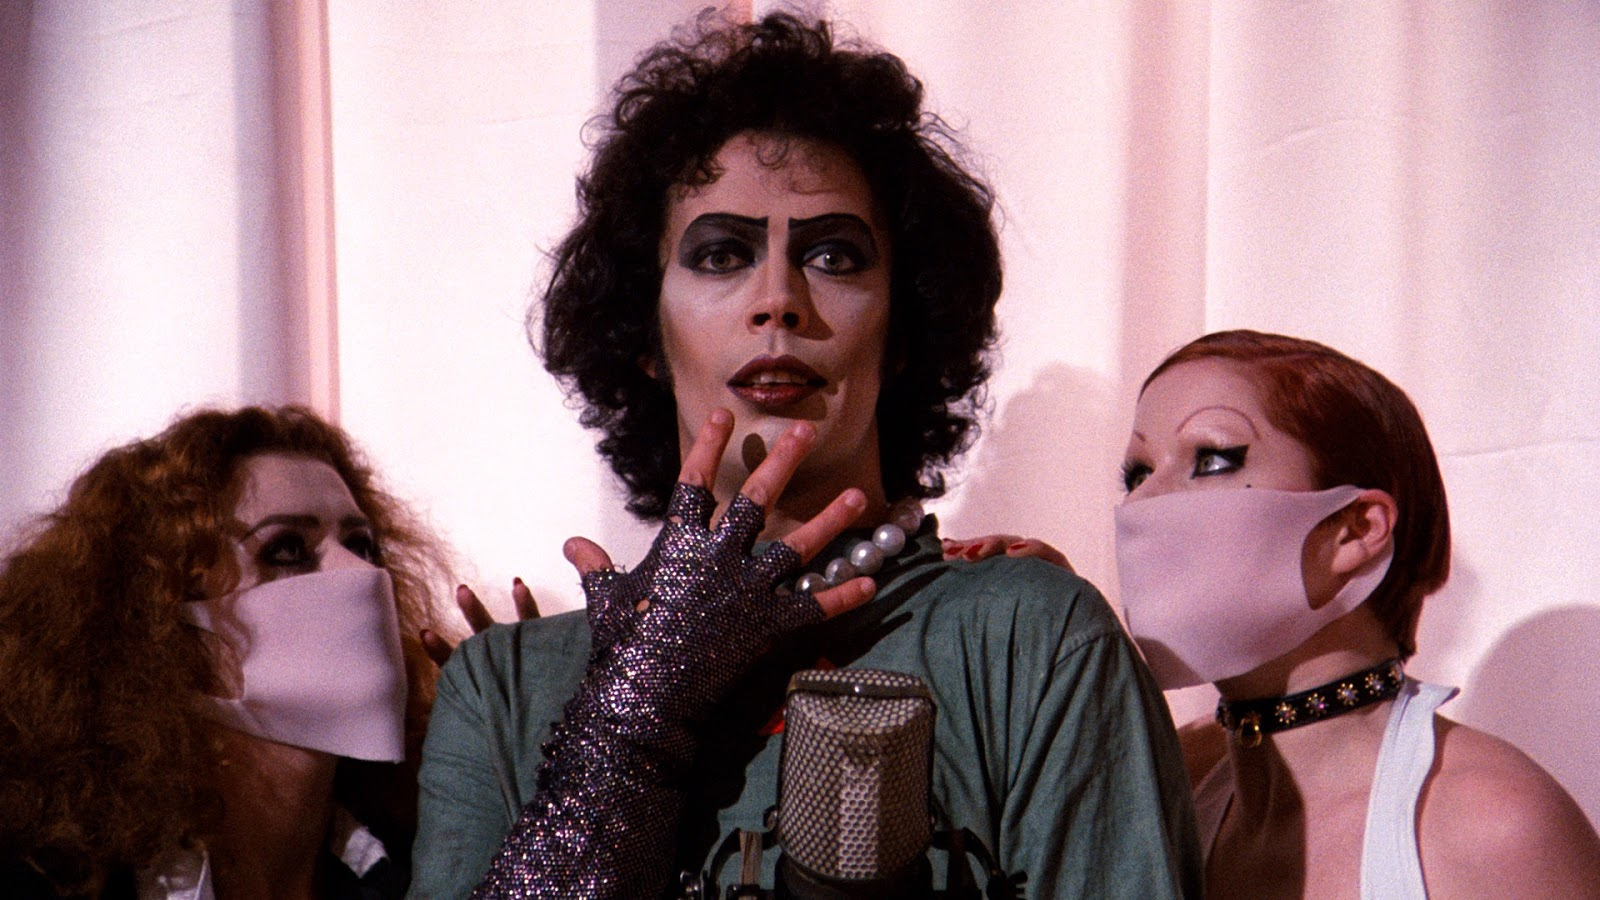 Tim Curry cast as Criminologist in Rocky Horror reboot